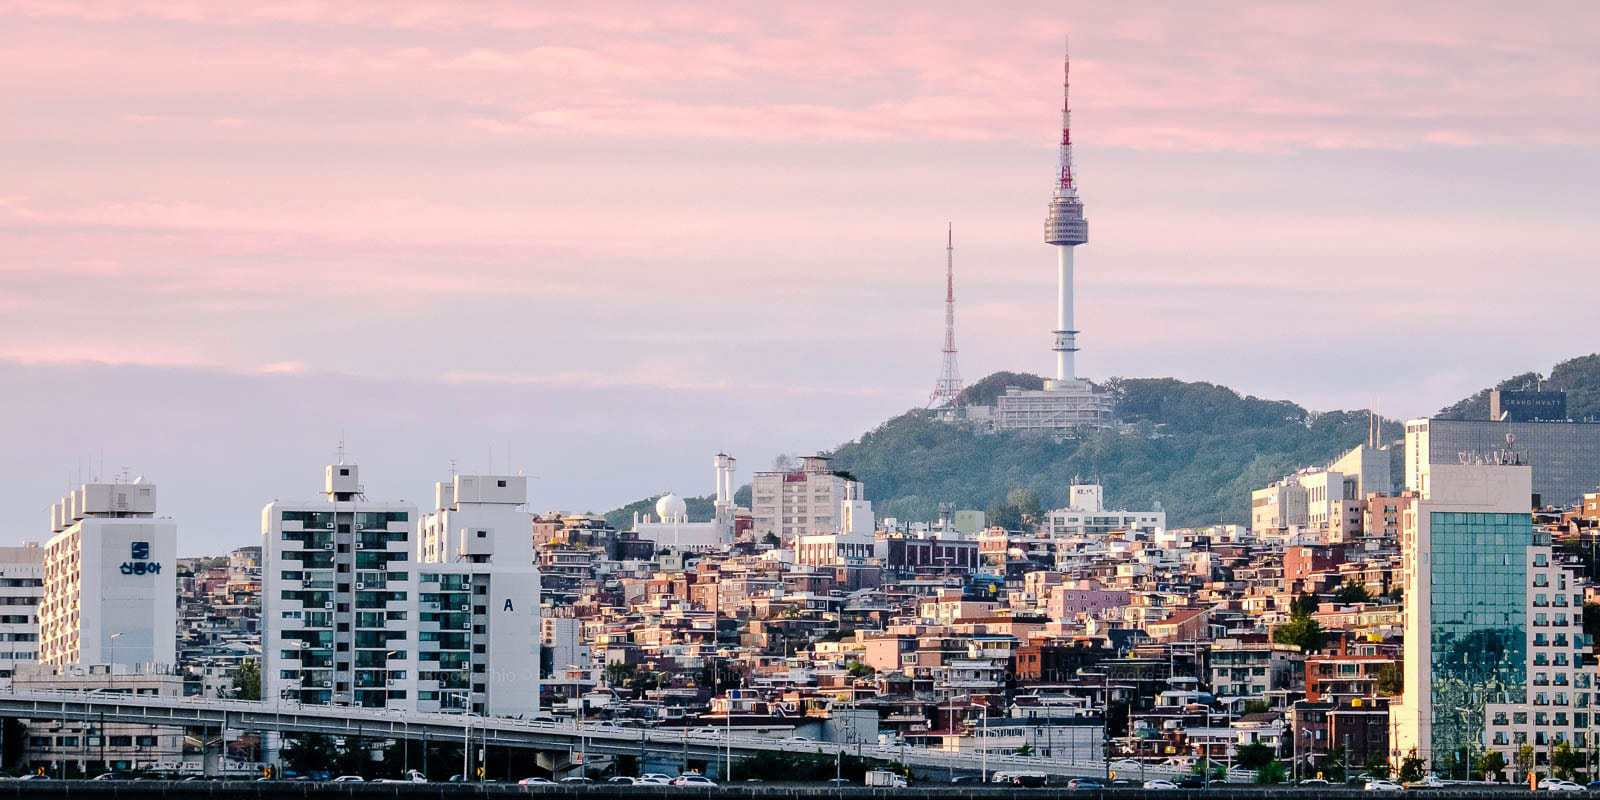 Namsan, Seoul, at sunset